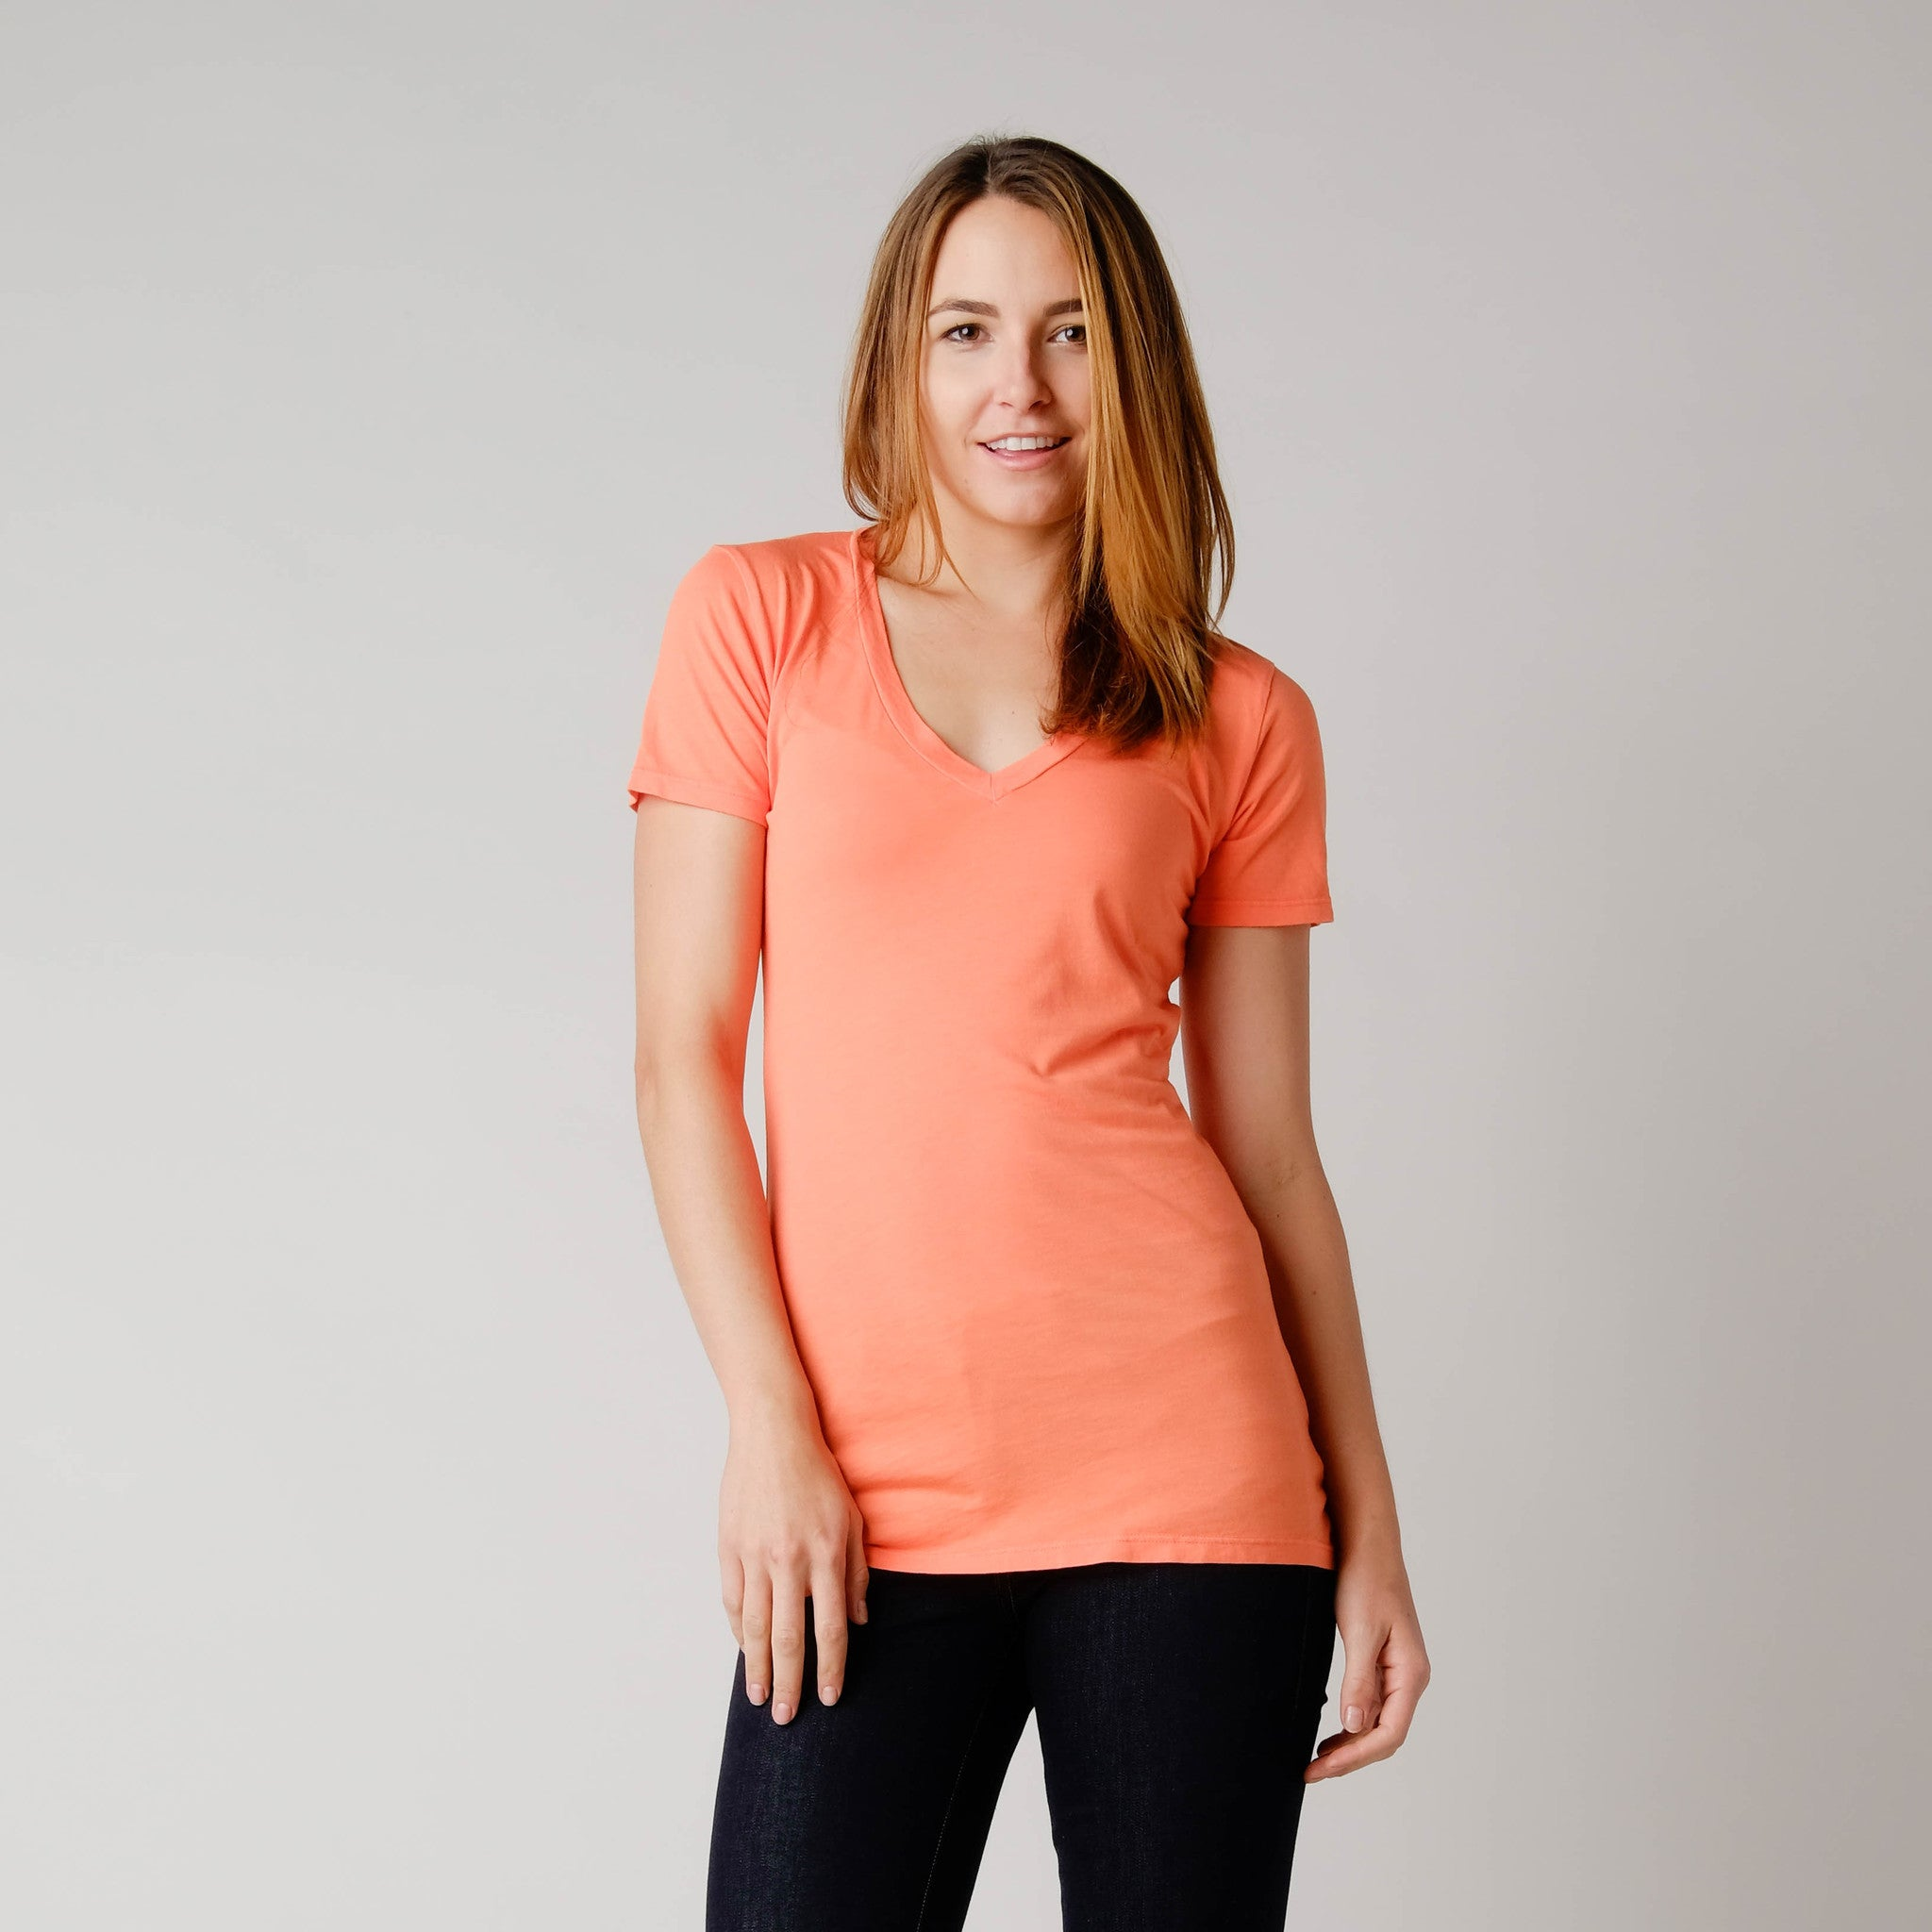 BDC Hemp/Organic Cotton Vee Neck Tee Kombucha